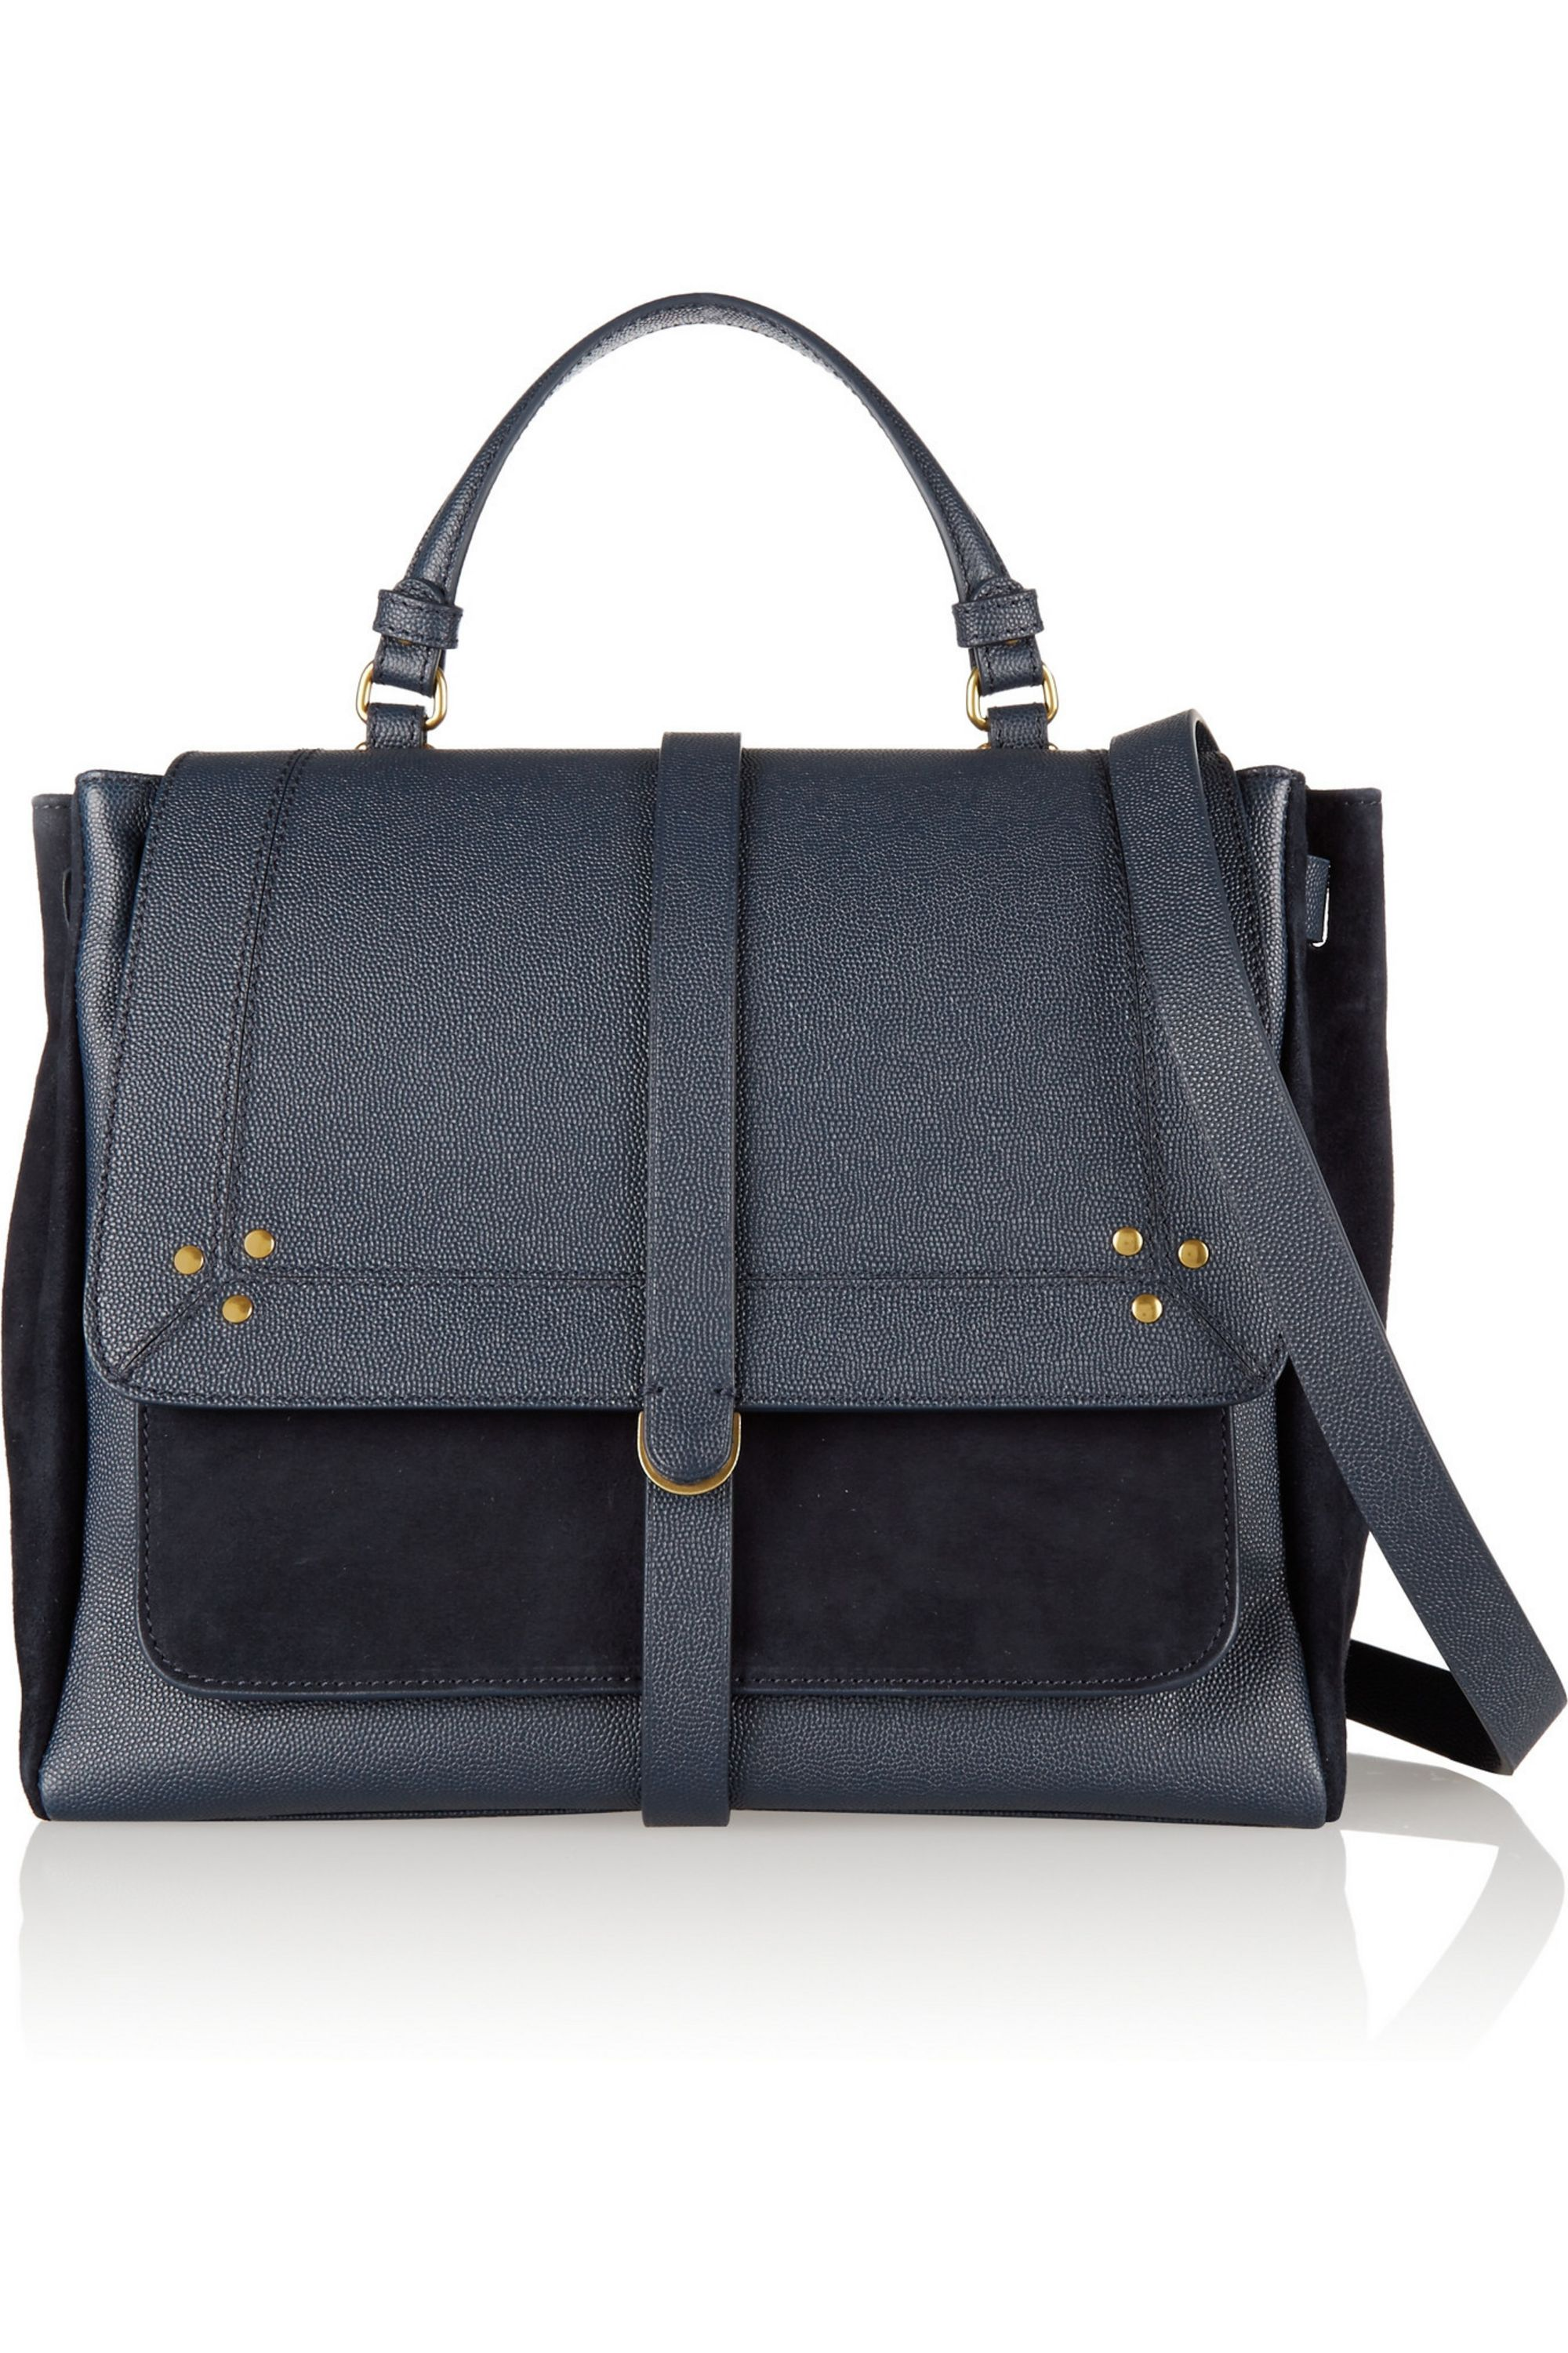 Jérôme Dreyfuss Edoard textured-leather and suede tote